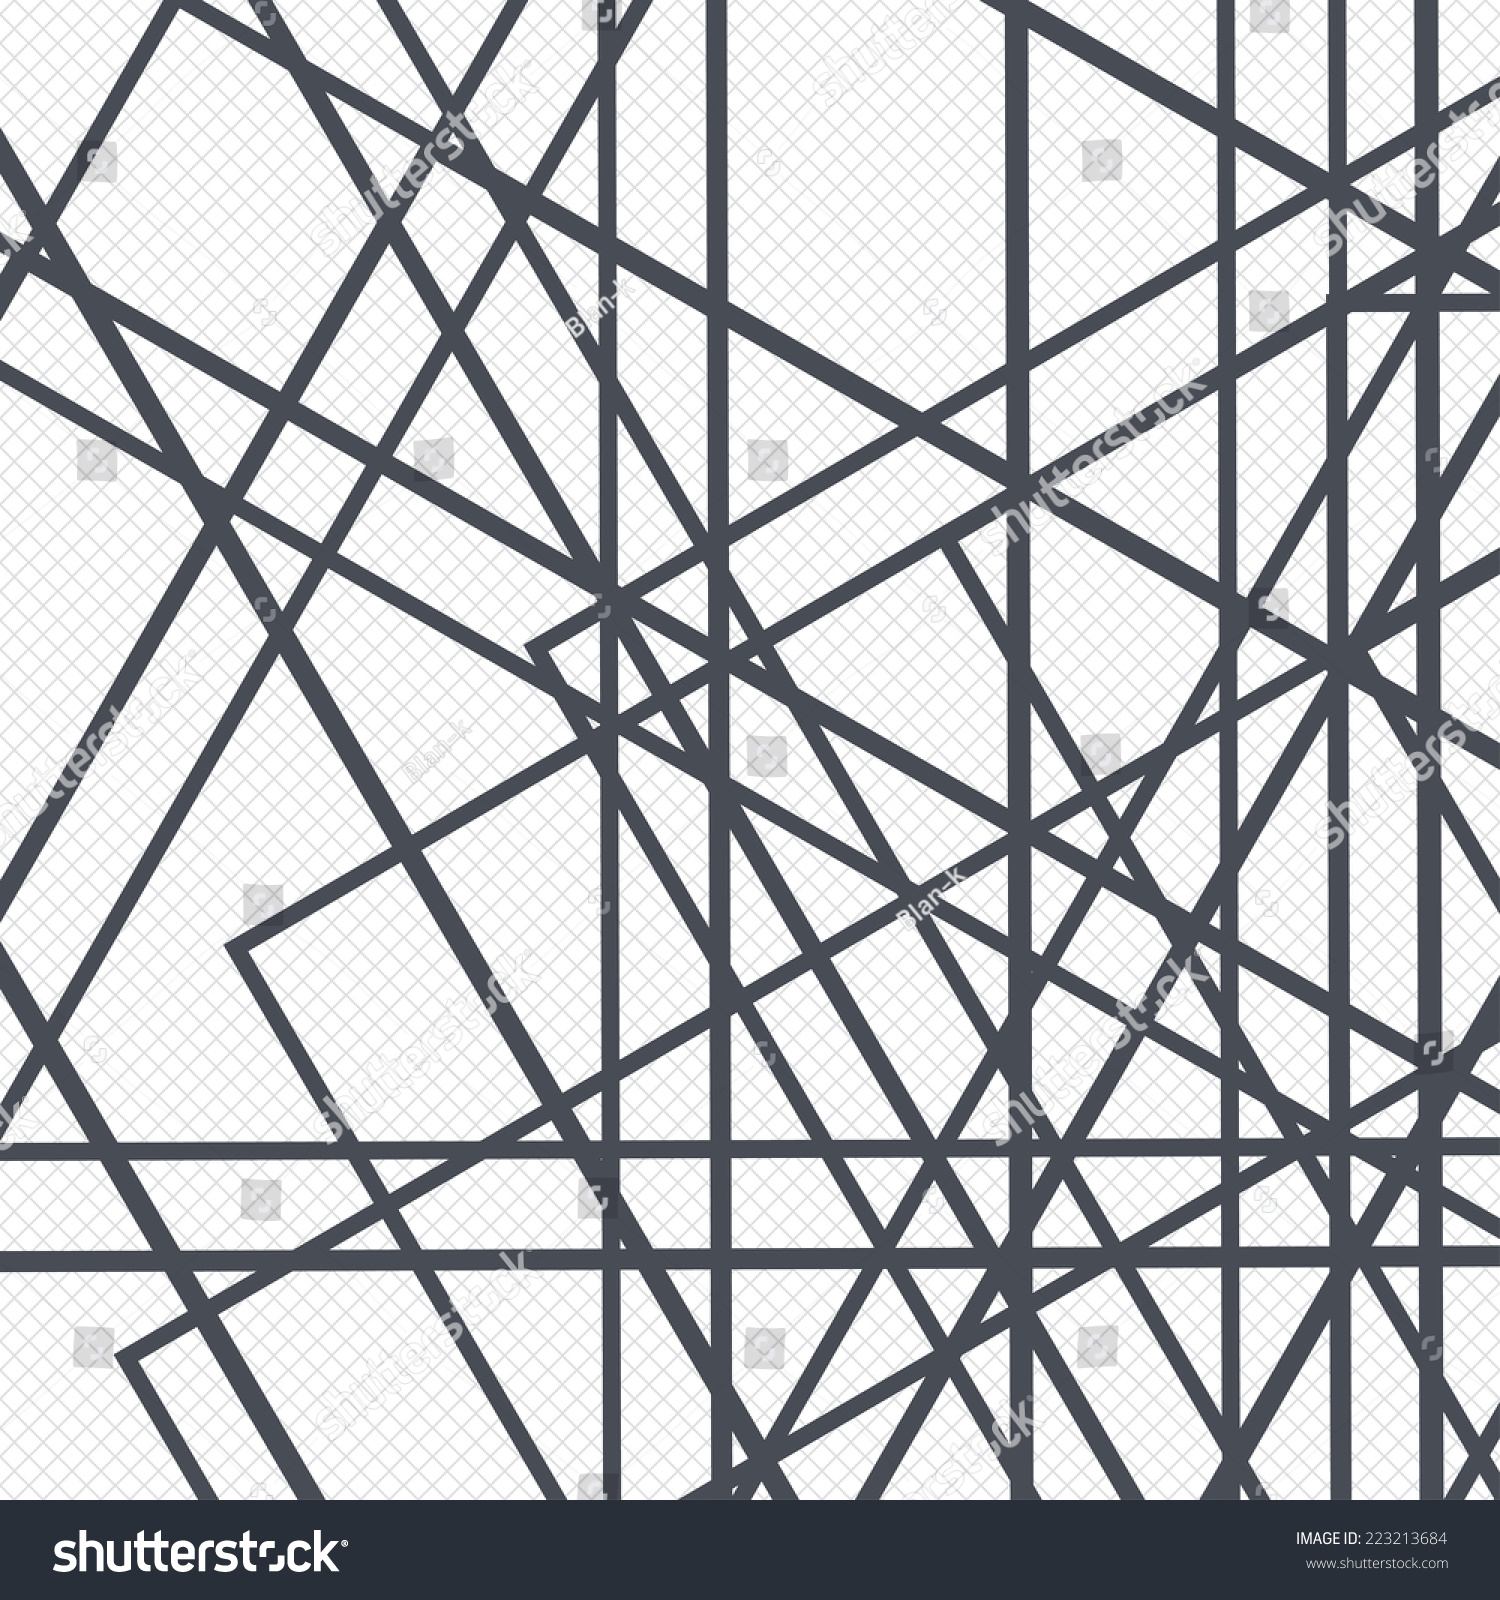 Line Texture Wallpaper : Abstract lines pattern vector imgkid the image